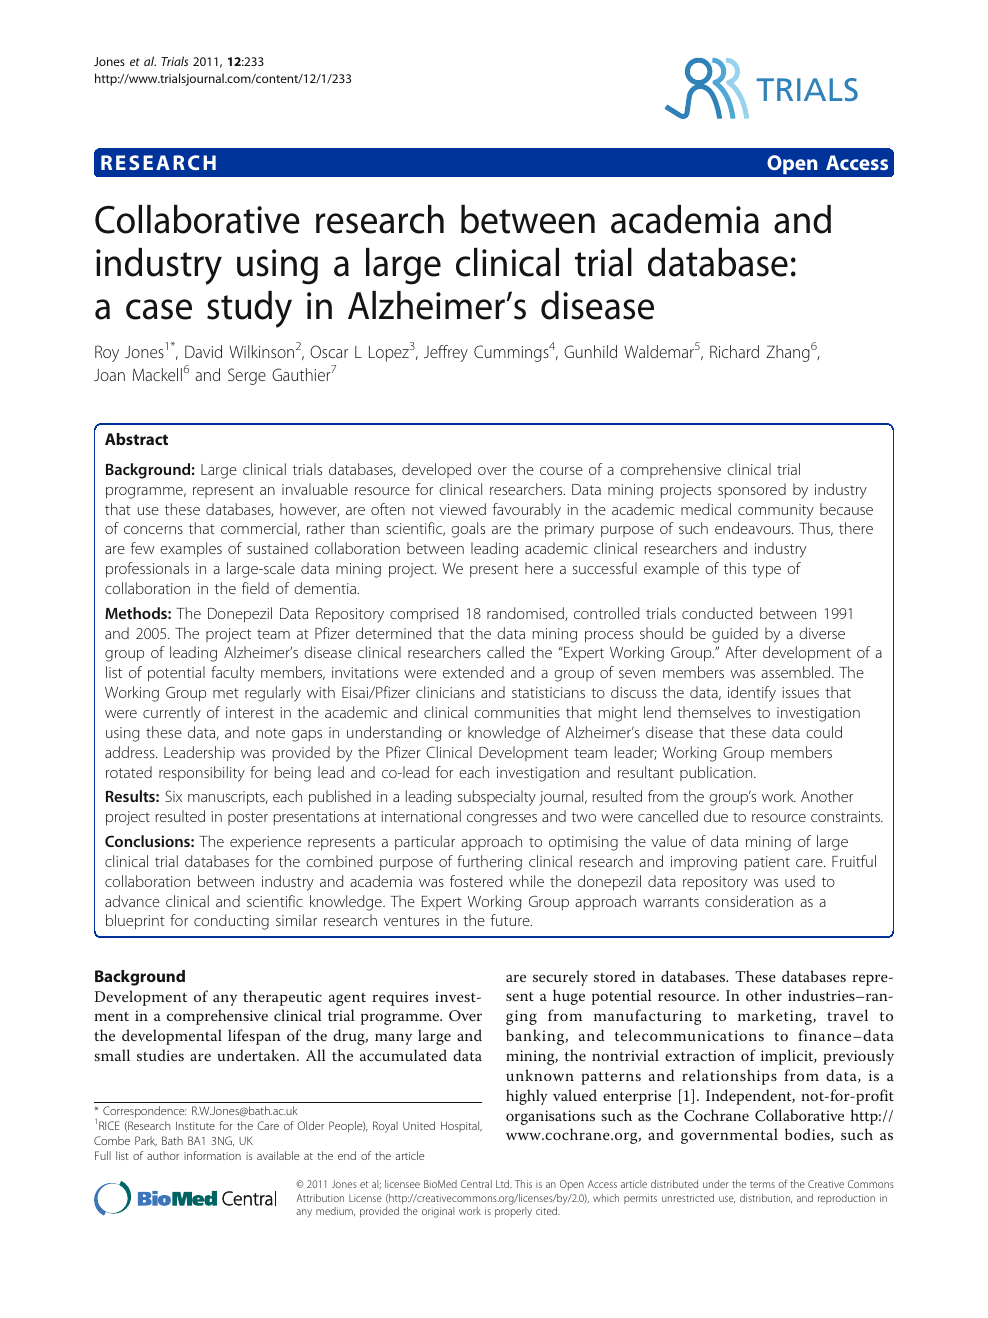 Collaborative research between academia and industry using a